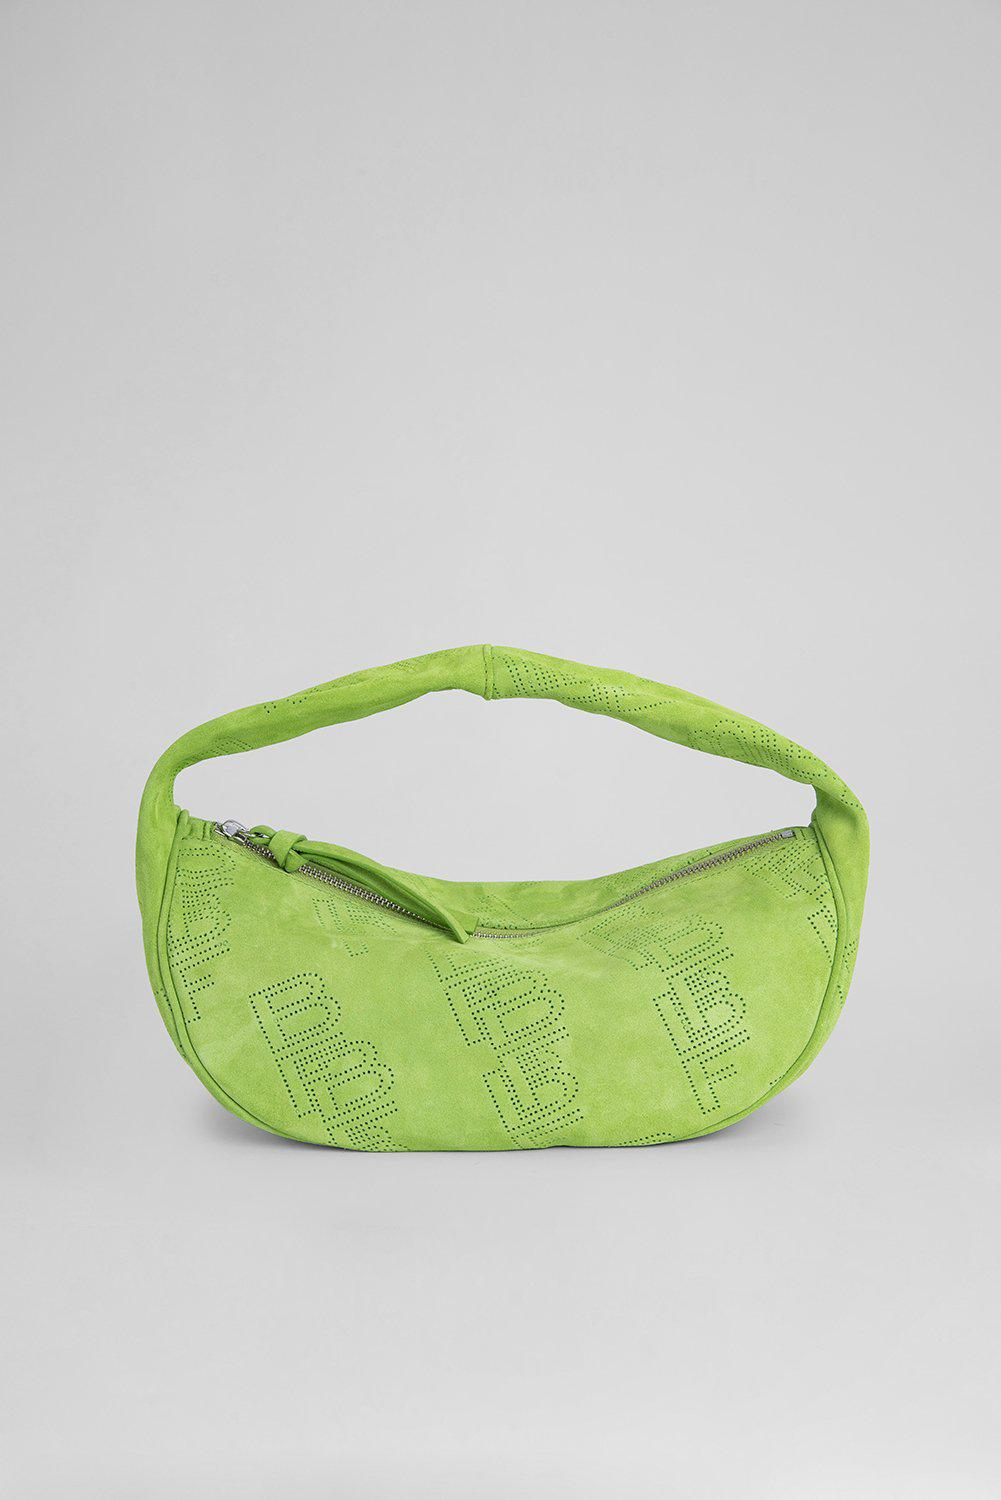 Cush Bright Green Perforated Suede Leather